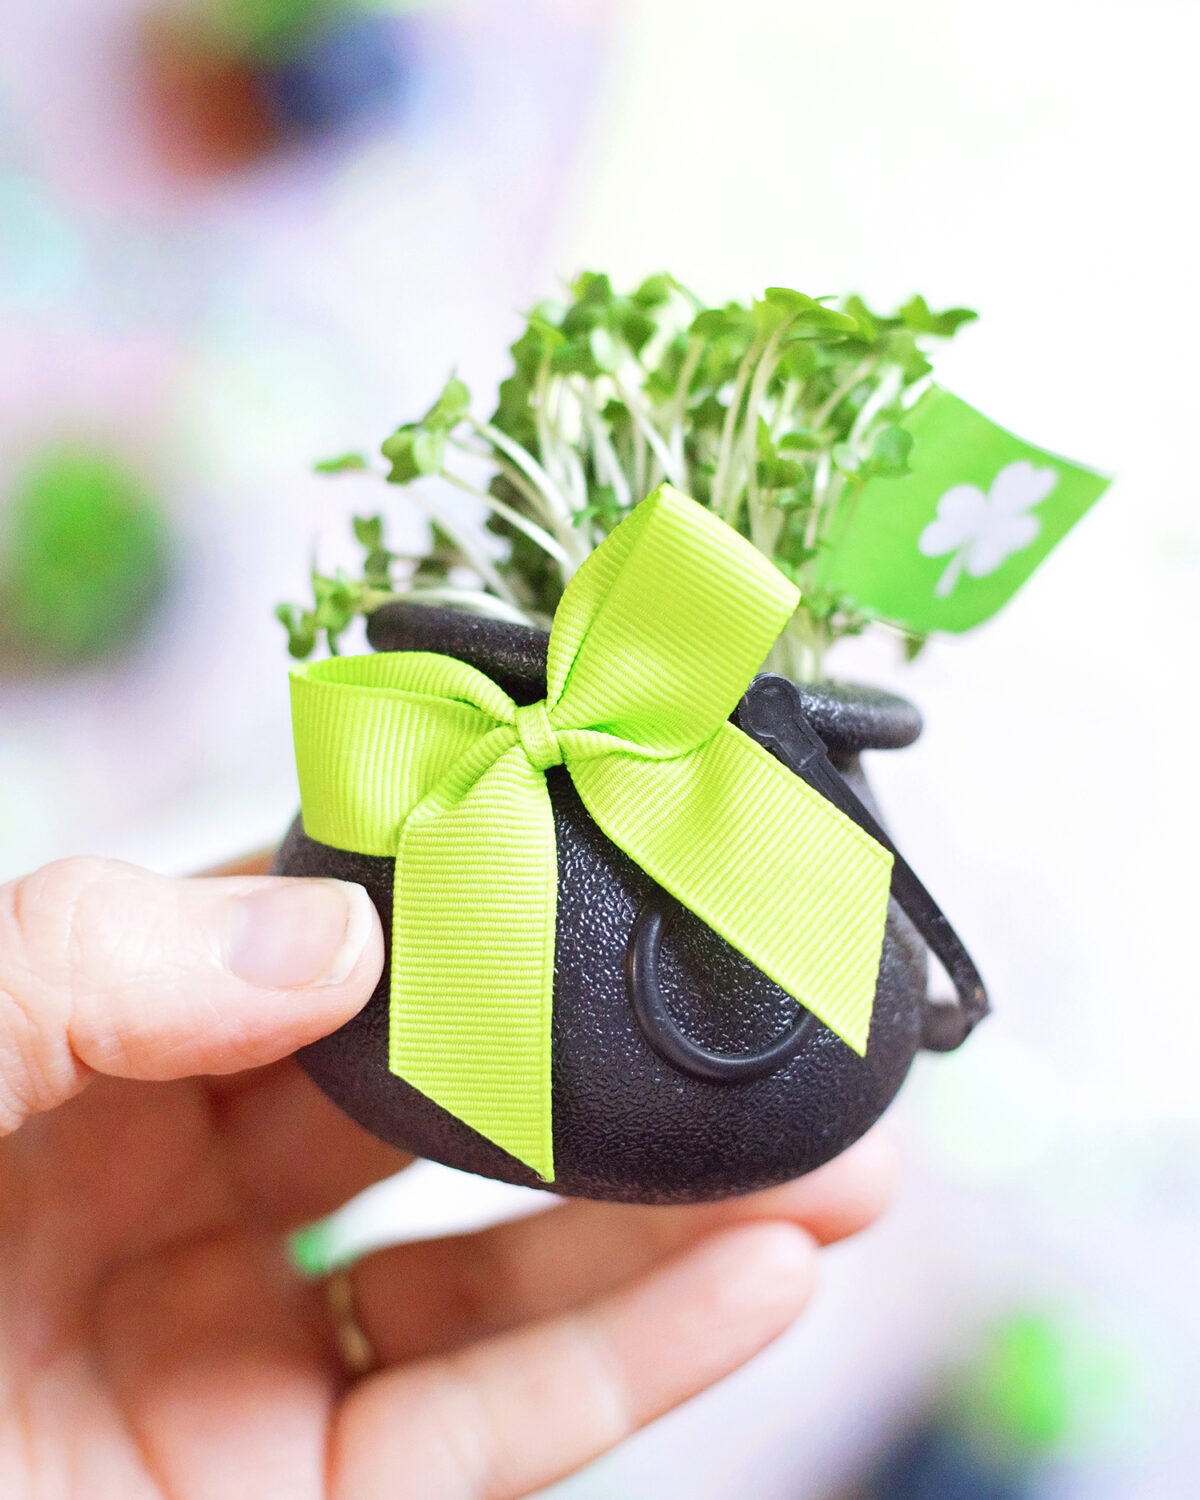 Decorated shamrock cress pots. Decorated with a green bow and shamrock flag to celebrate st. Patrick's day